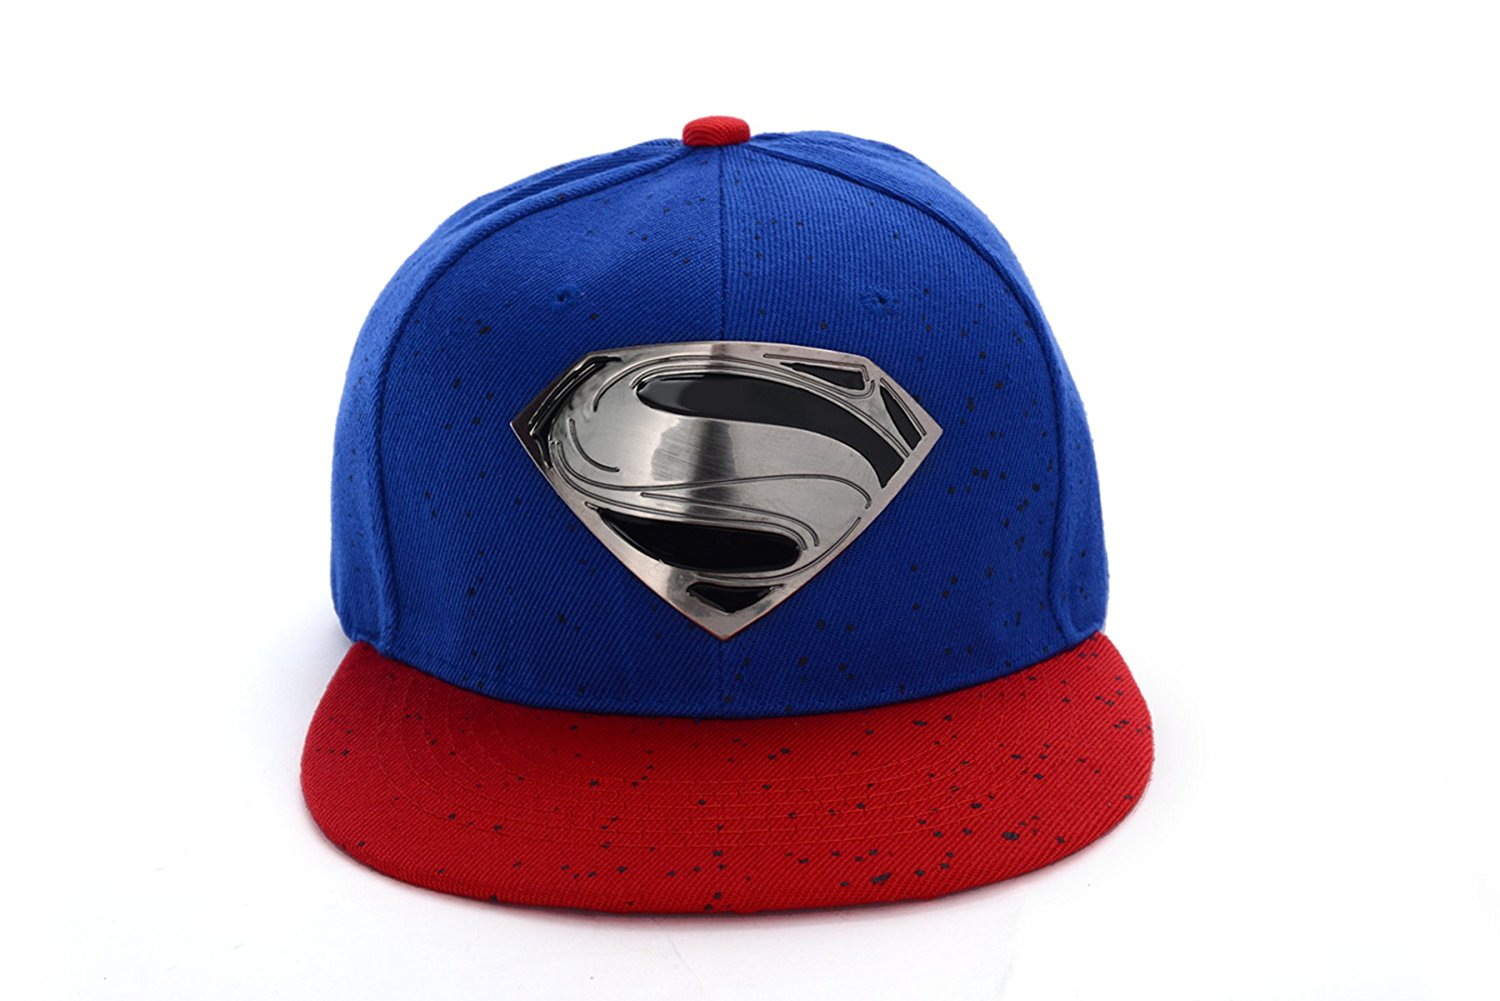 reputable site e6341 ad8cf ... wholesale snapback hat super hero superman baseball caps adjustable hip  hop hat 42c29 2f275